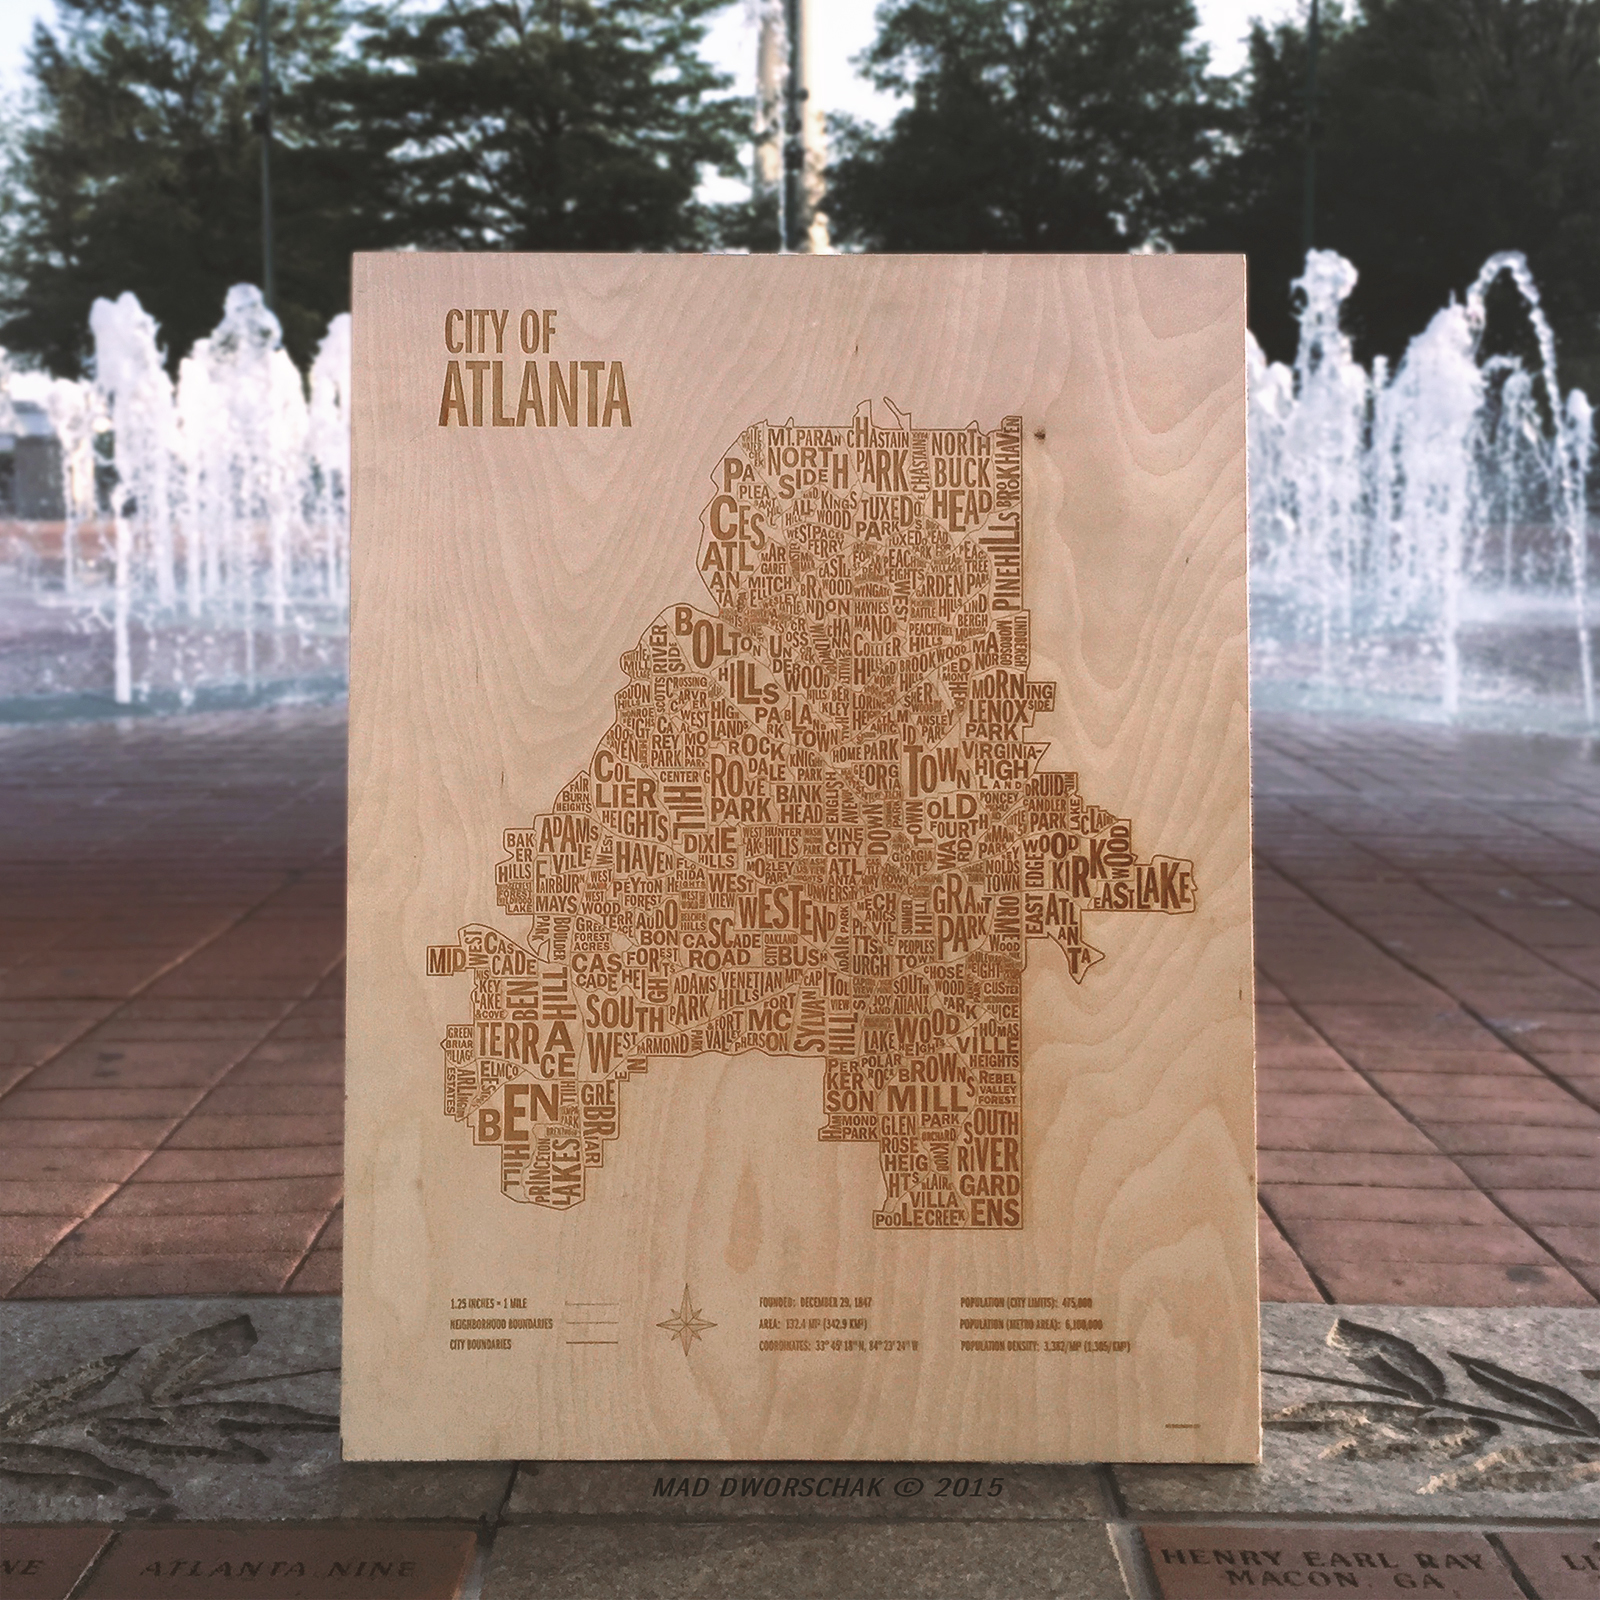 ATL_map_2015_wood-engraving-centennial-olympic-park.jpg